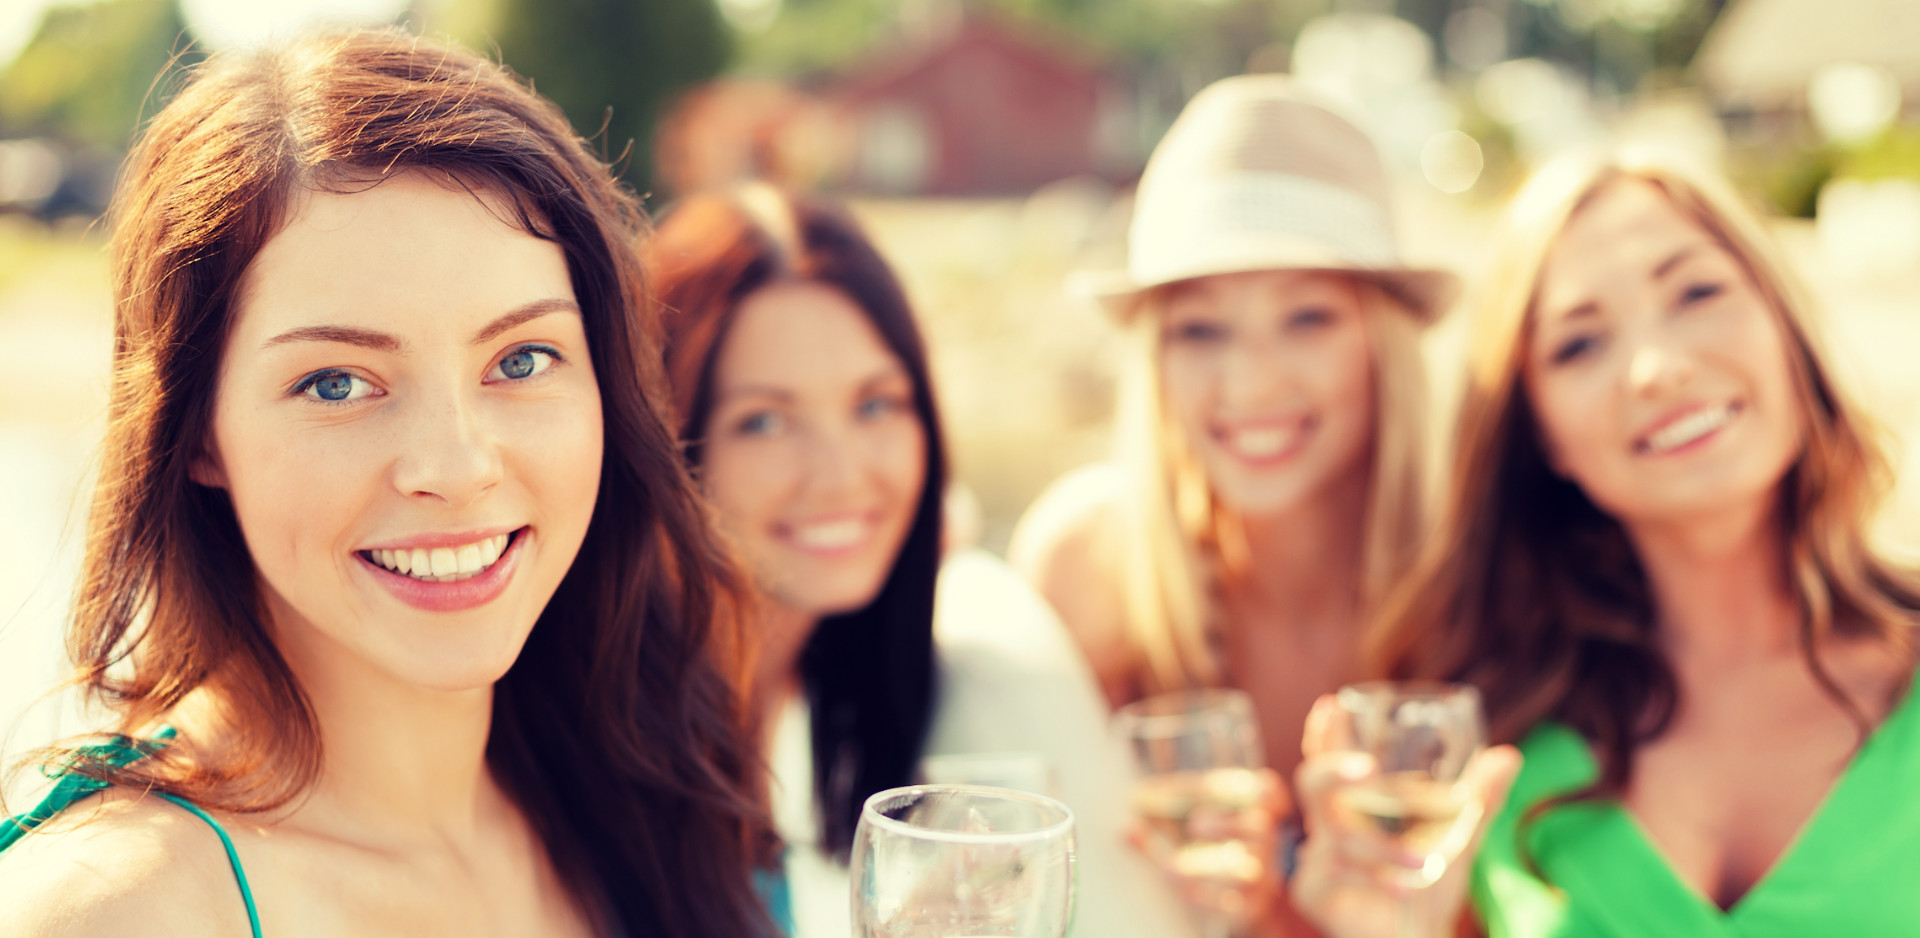 Group of girlfriends having fun and drinking wine